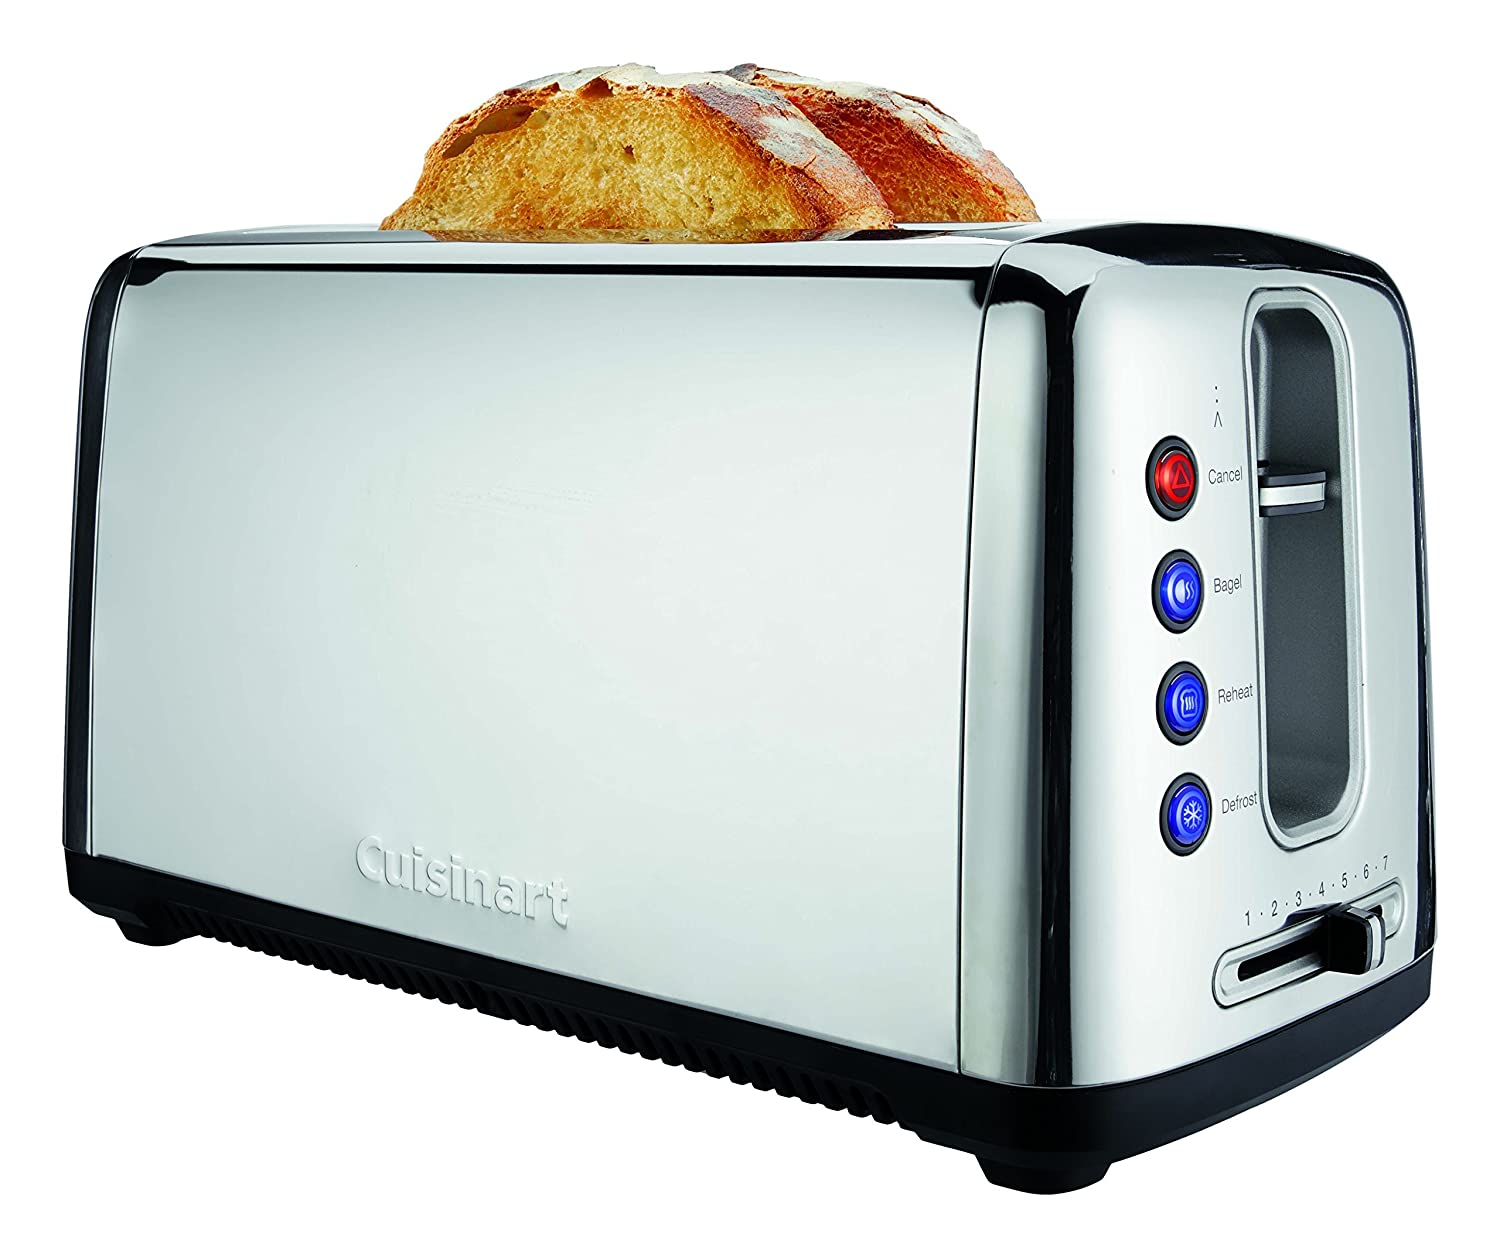 Cuisinart CPT-2400 086279117786 The The Bakery Artisan Bread Toaster, One Size, Chrome (Renewed)